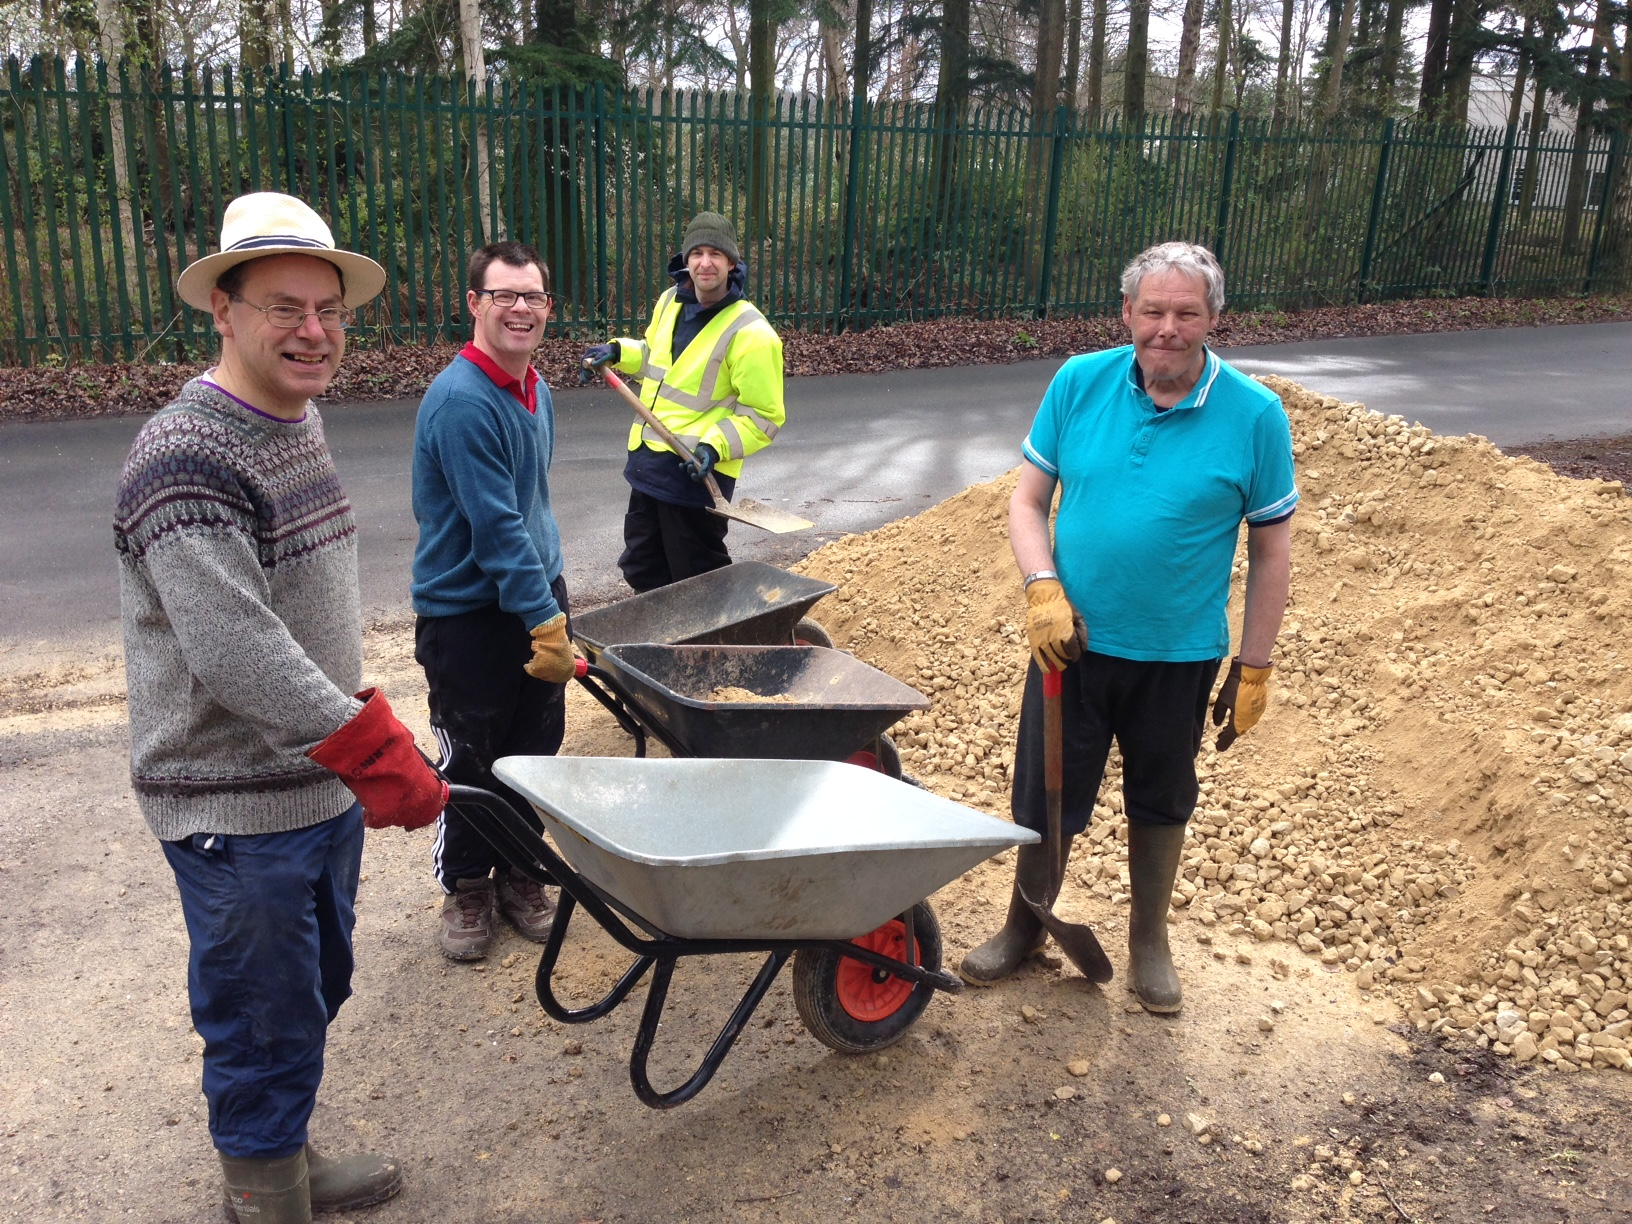 The group doing path work, standing next to wheelbarrows with shovels.